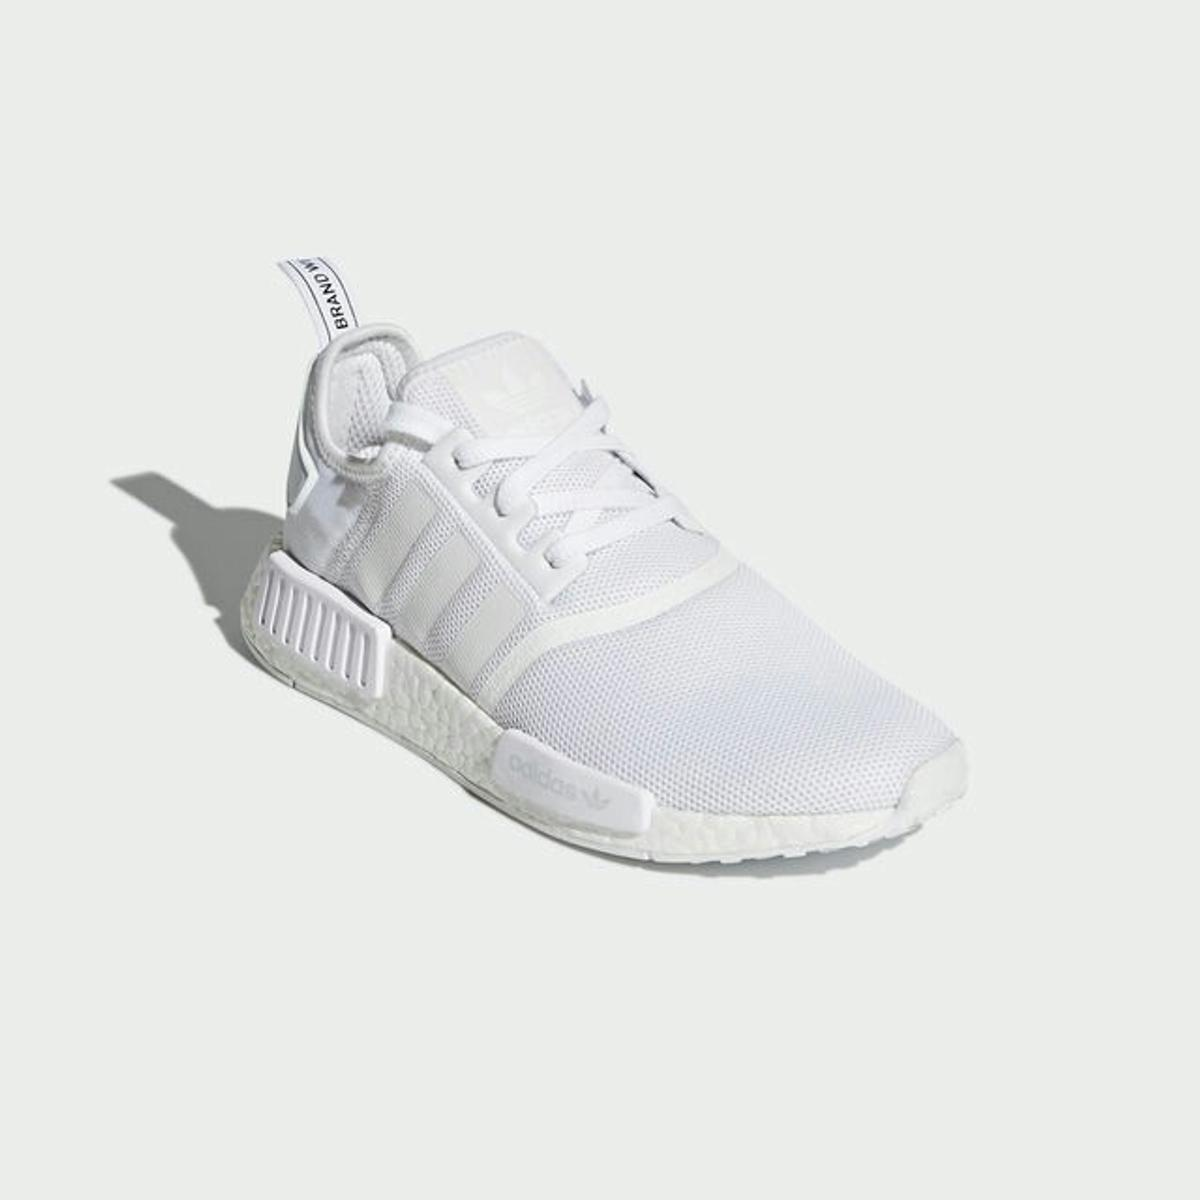 3506ef897e594 Adidas NMD R1 in 08371 Glauchau for €40.00 for sale - Shpock